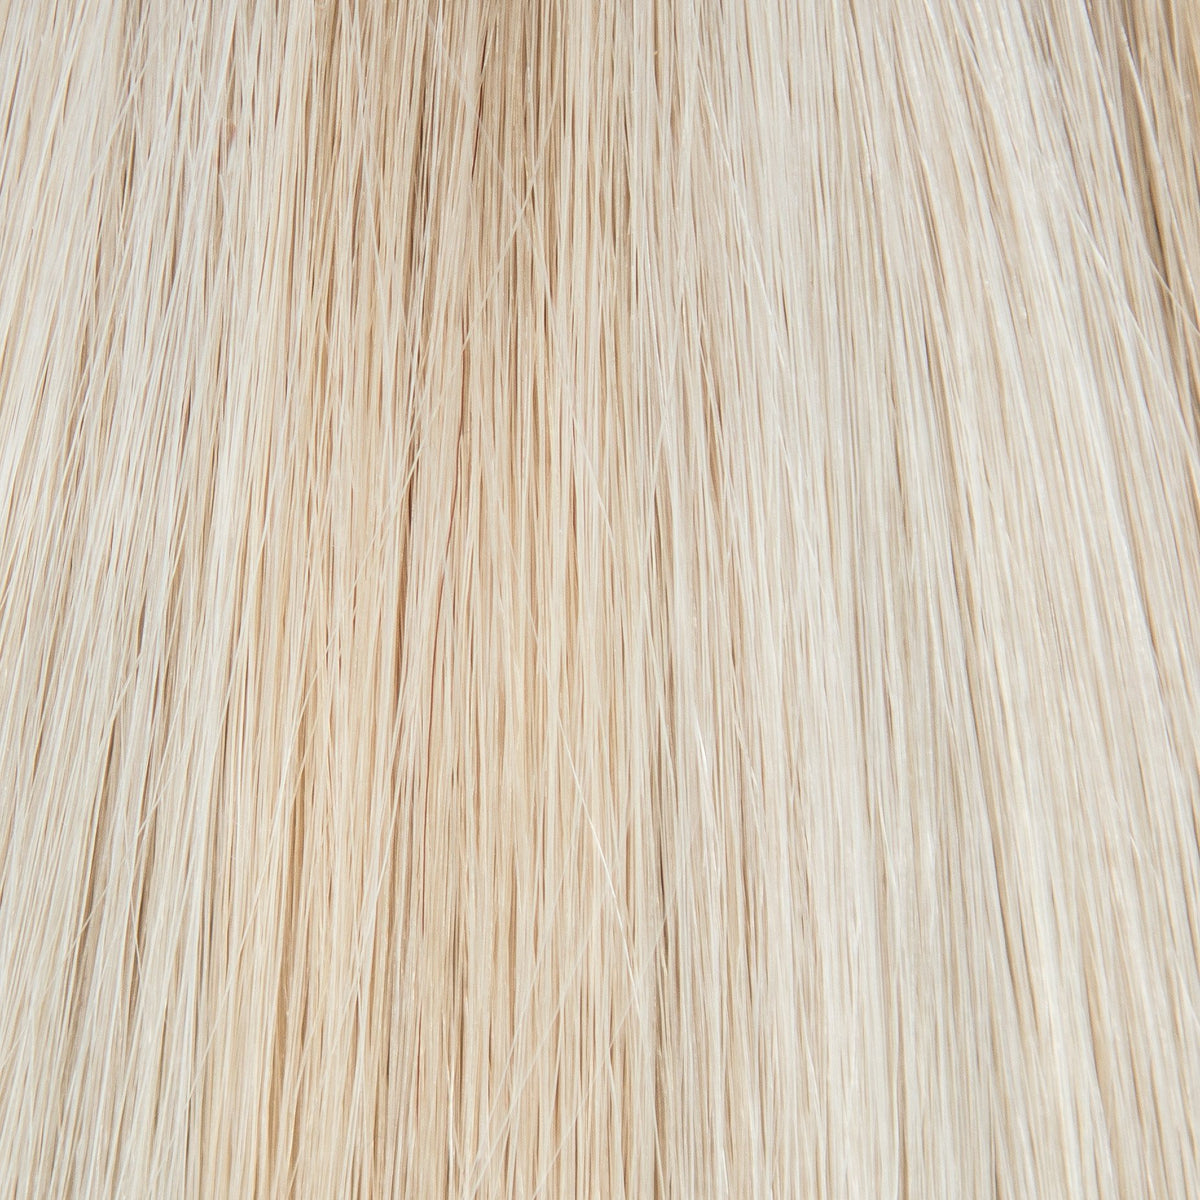 Machine_Sewn_Weft - Laced Hair Machine Sewn Weft Extensions Dimensional #16/22 (Buttercream)